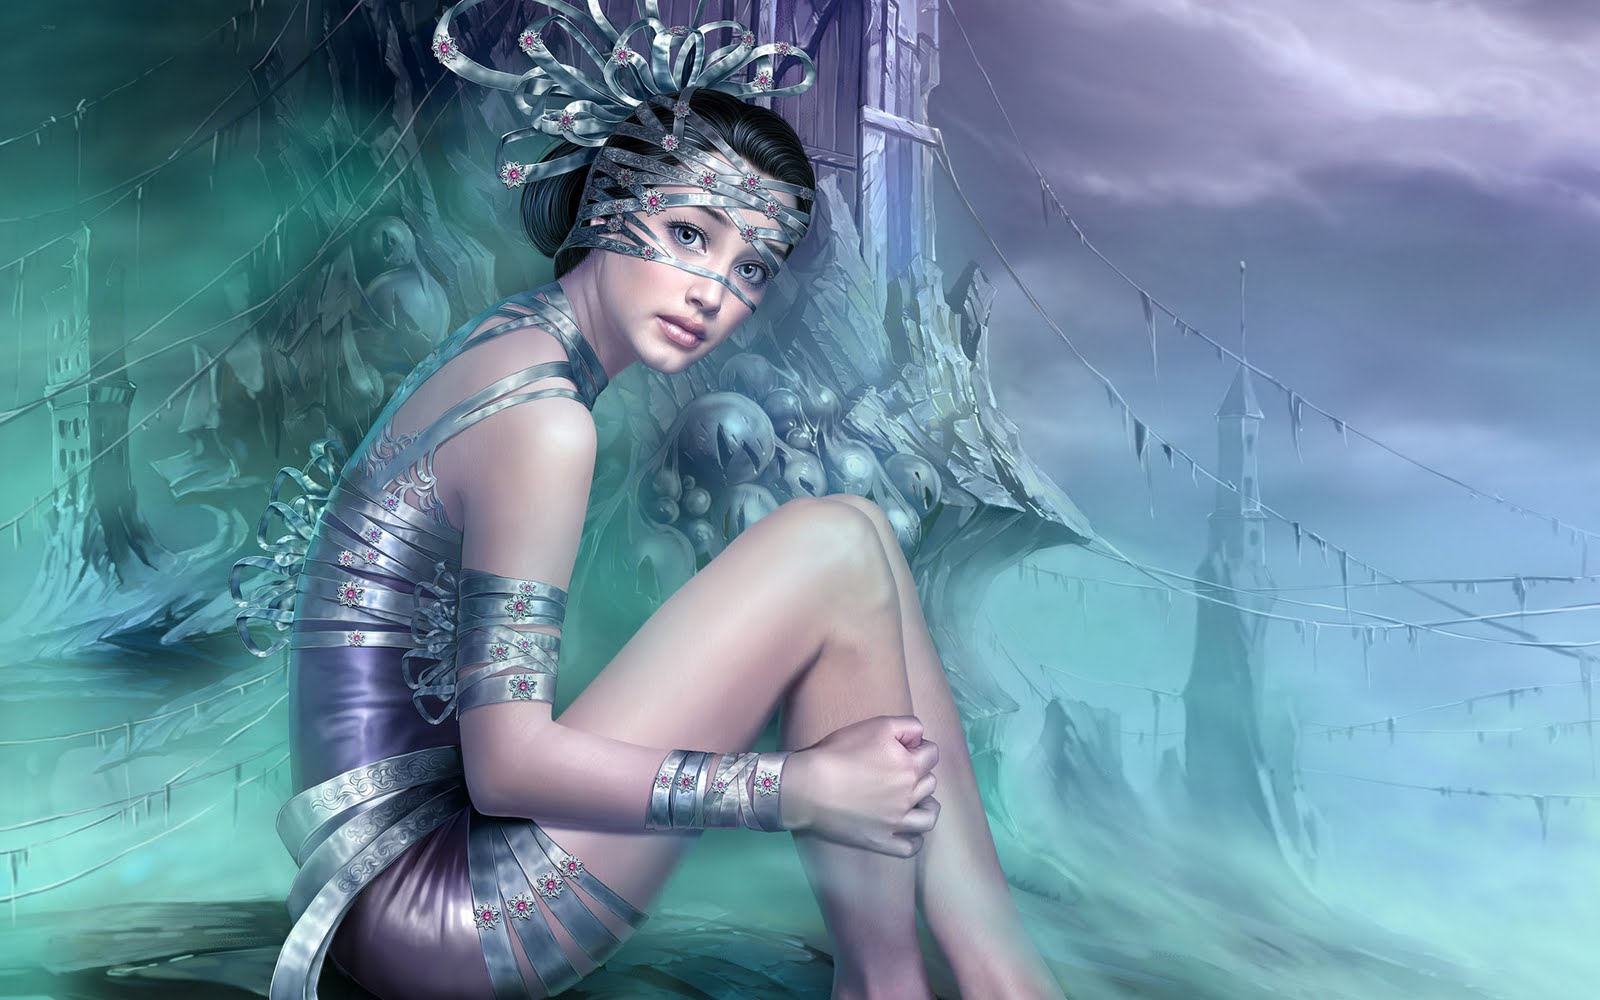 fantasy girls wallpapers 1920x1200 5 excellent graphics fantasy 1600x1000